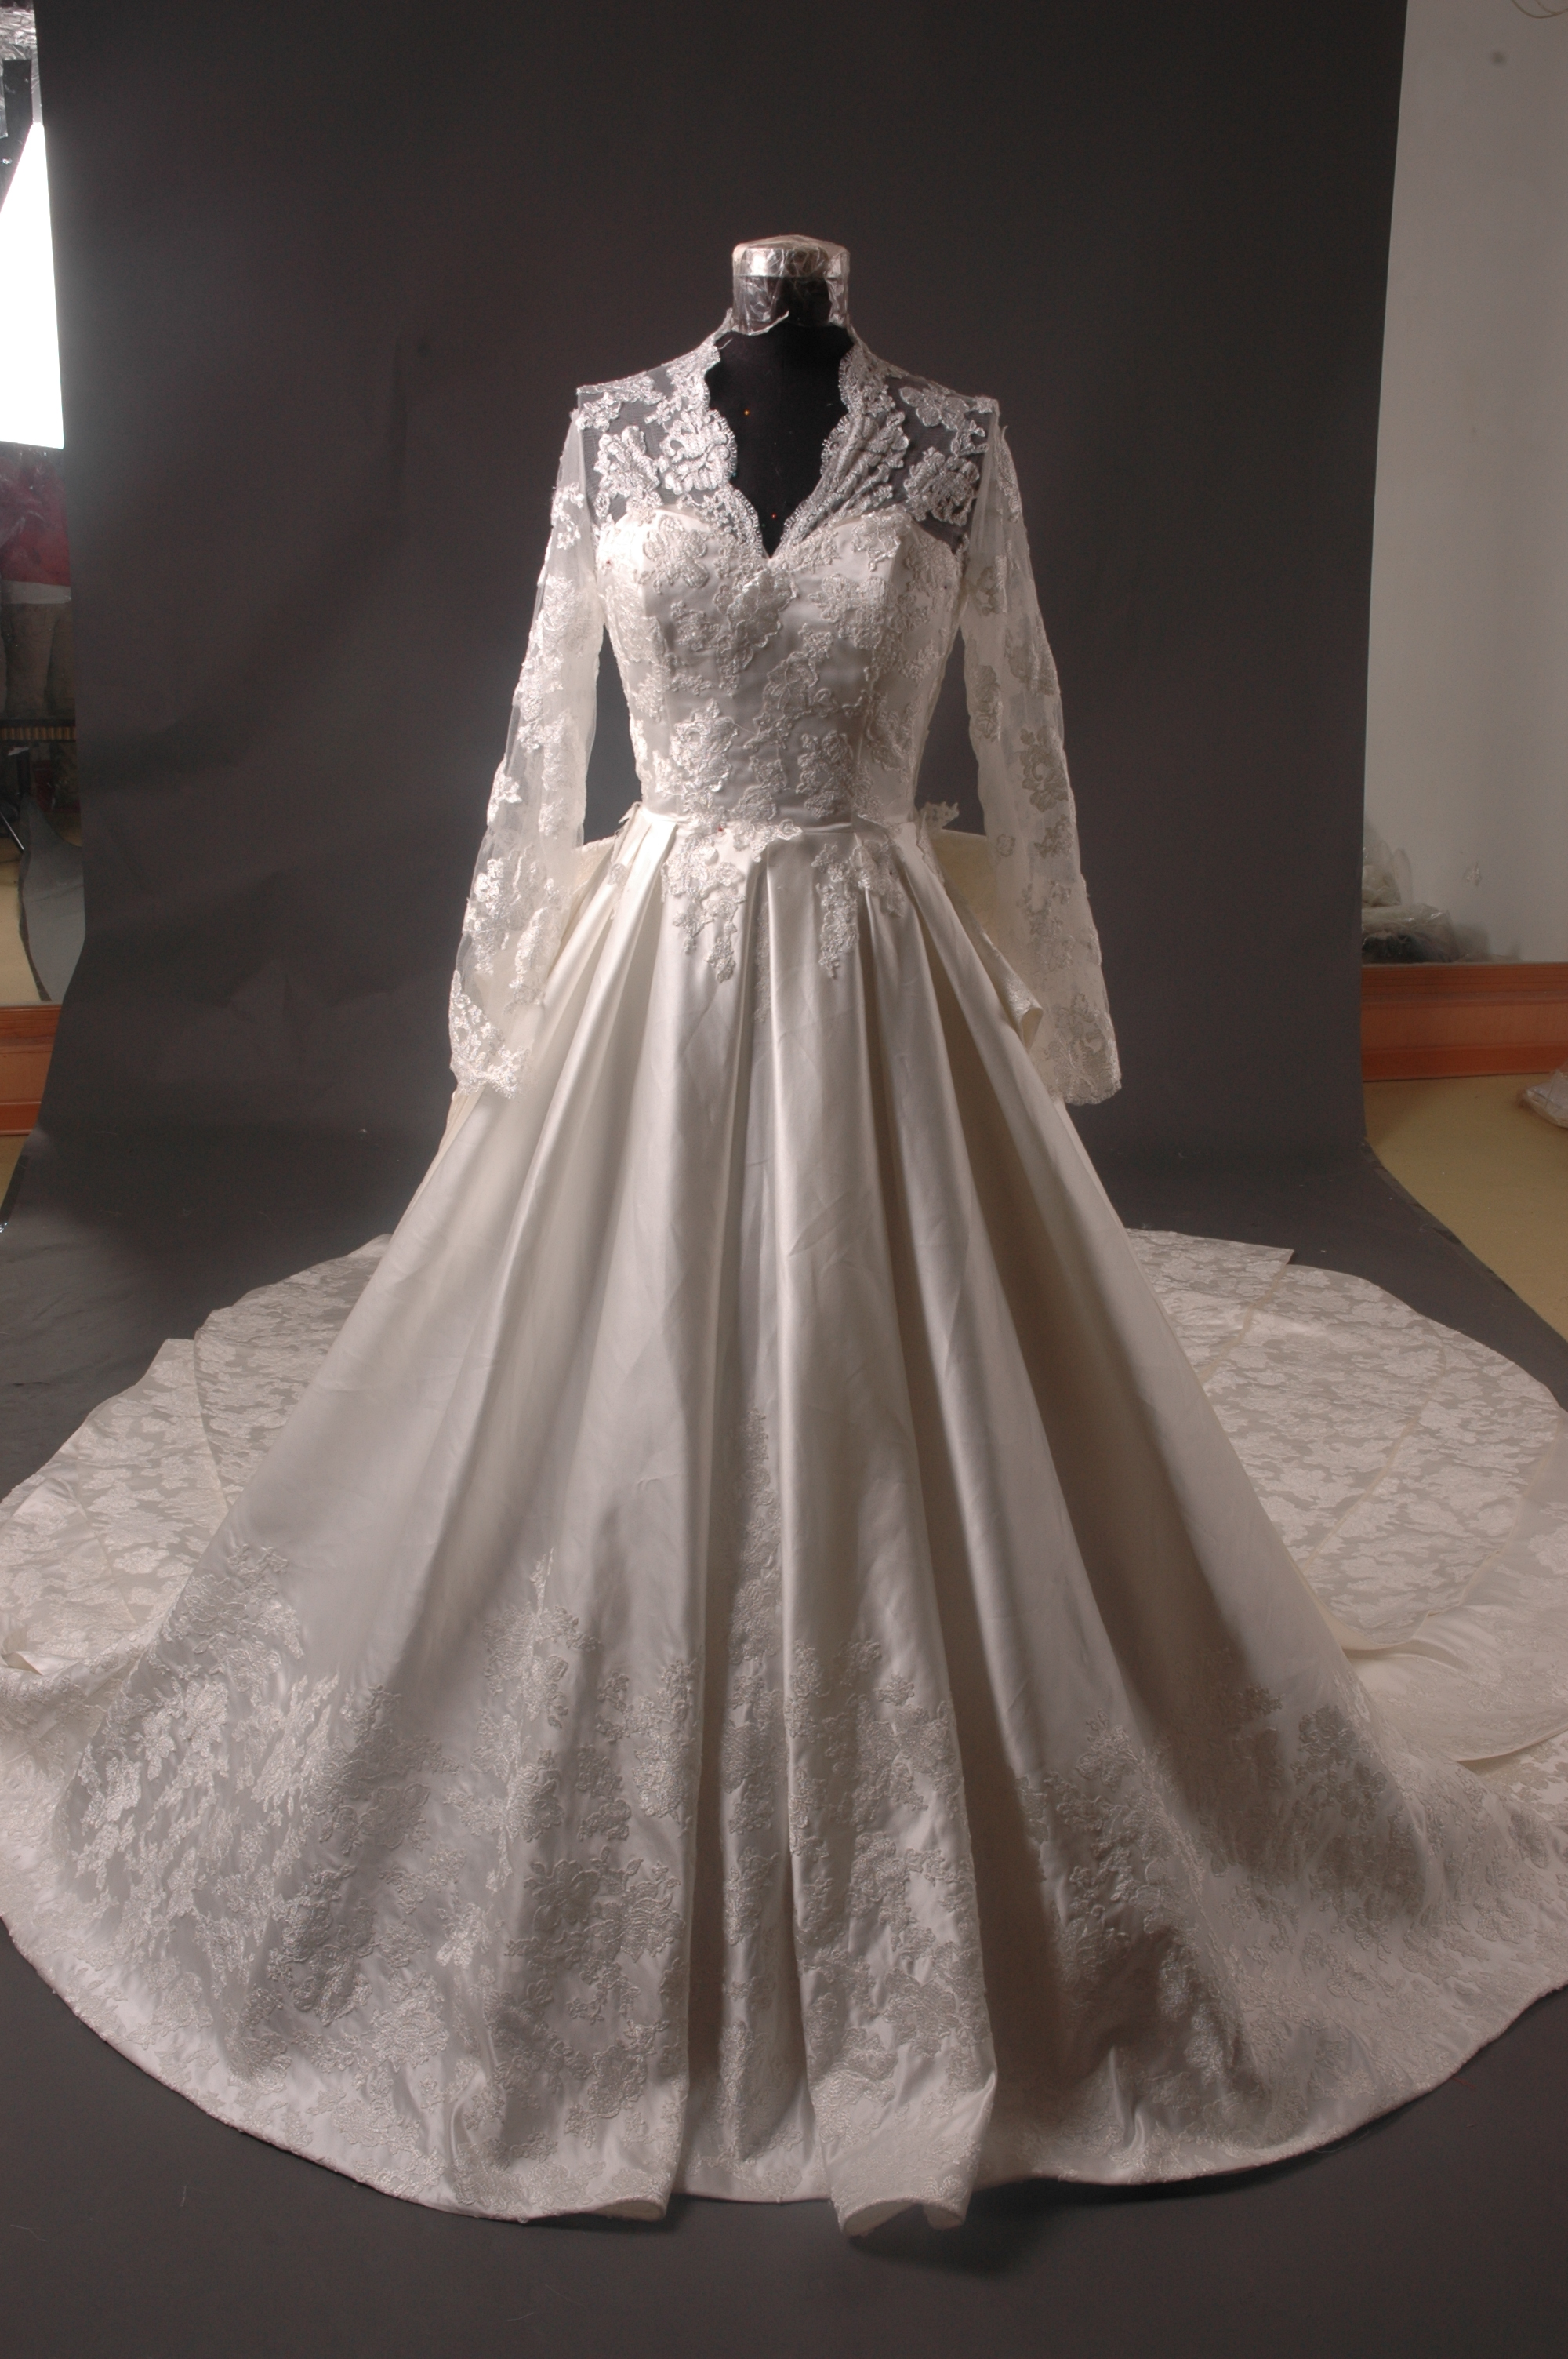 picture A Replica of Kate Middleton Wedding Dress Is Selling at HM for 299